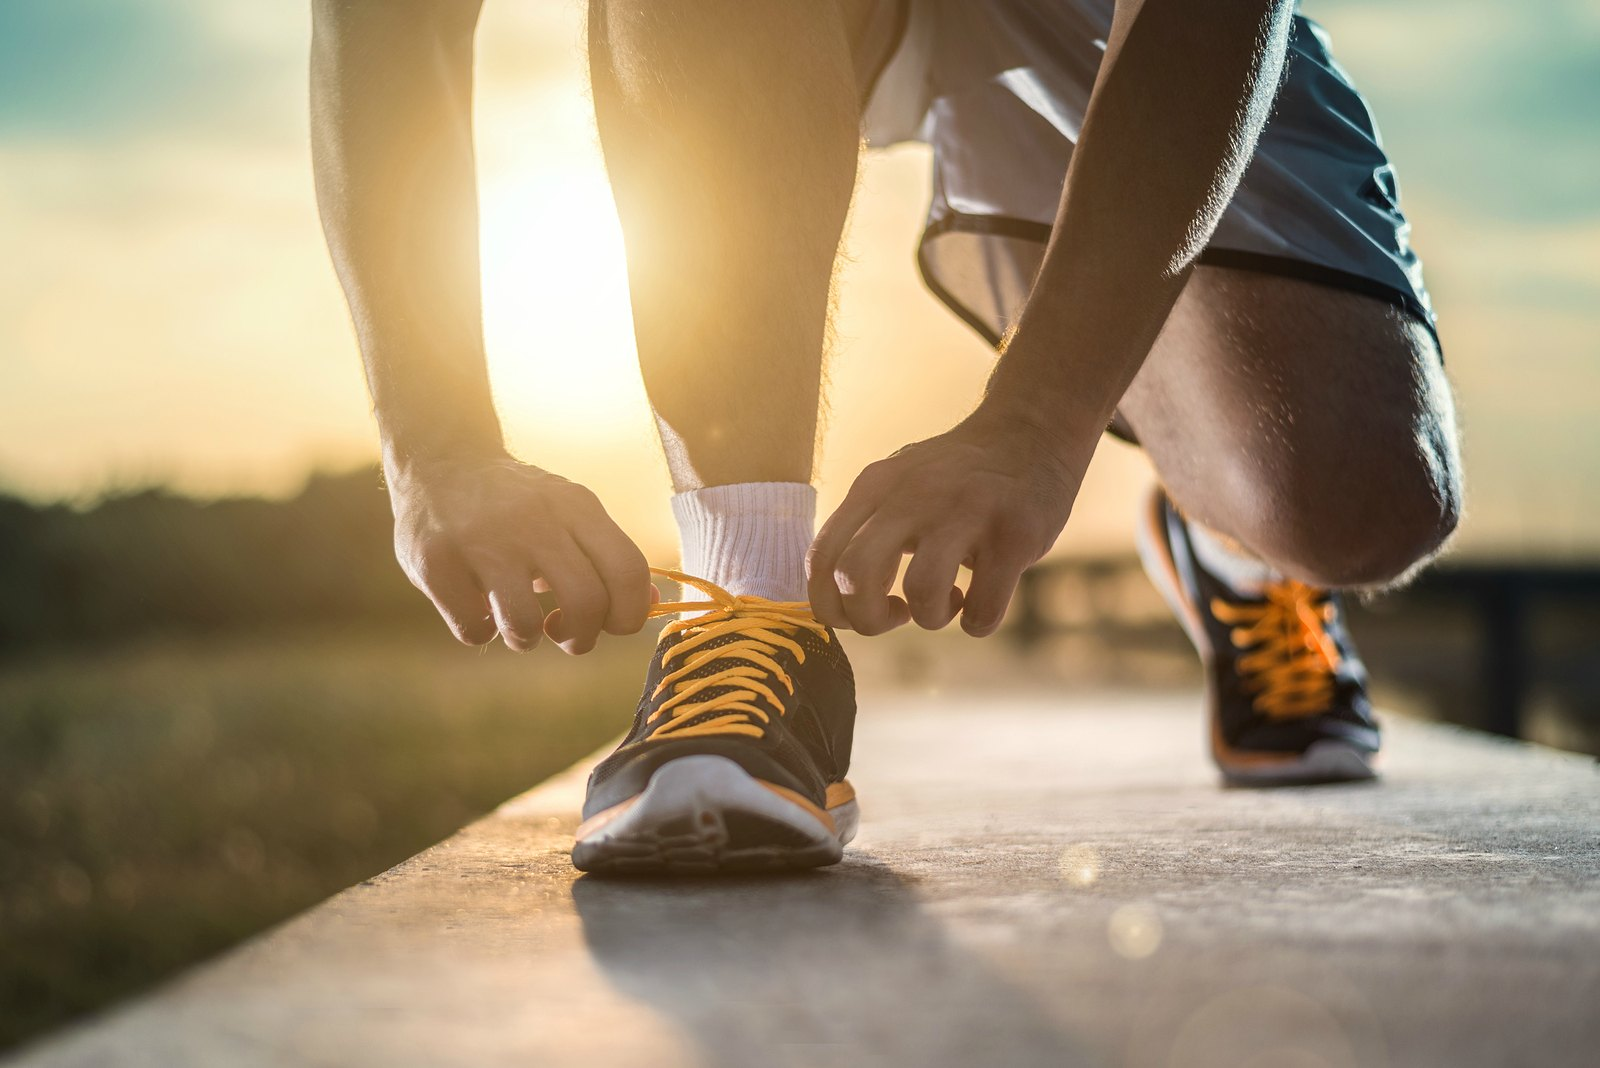 Barefoot Running? Study Finds Running Shoes Build Muscle